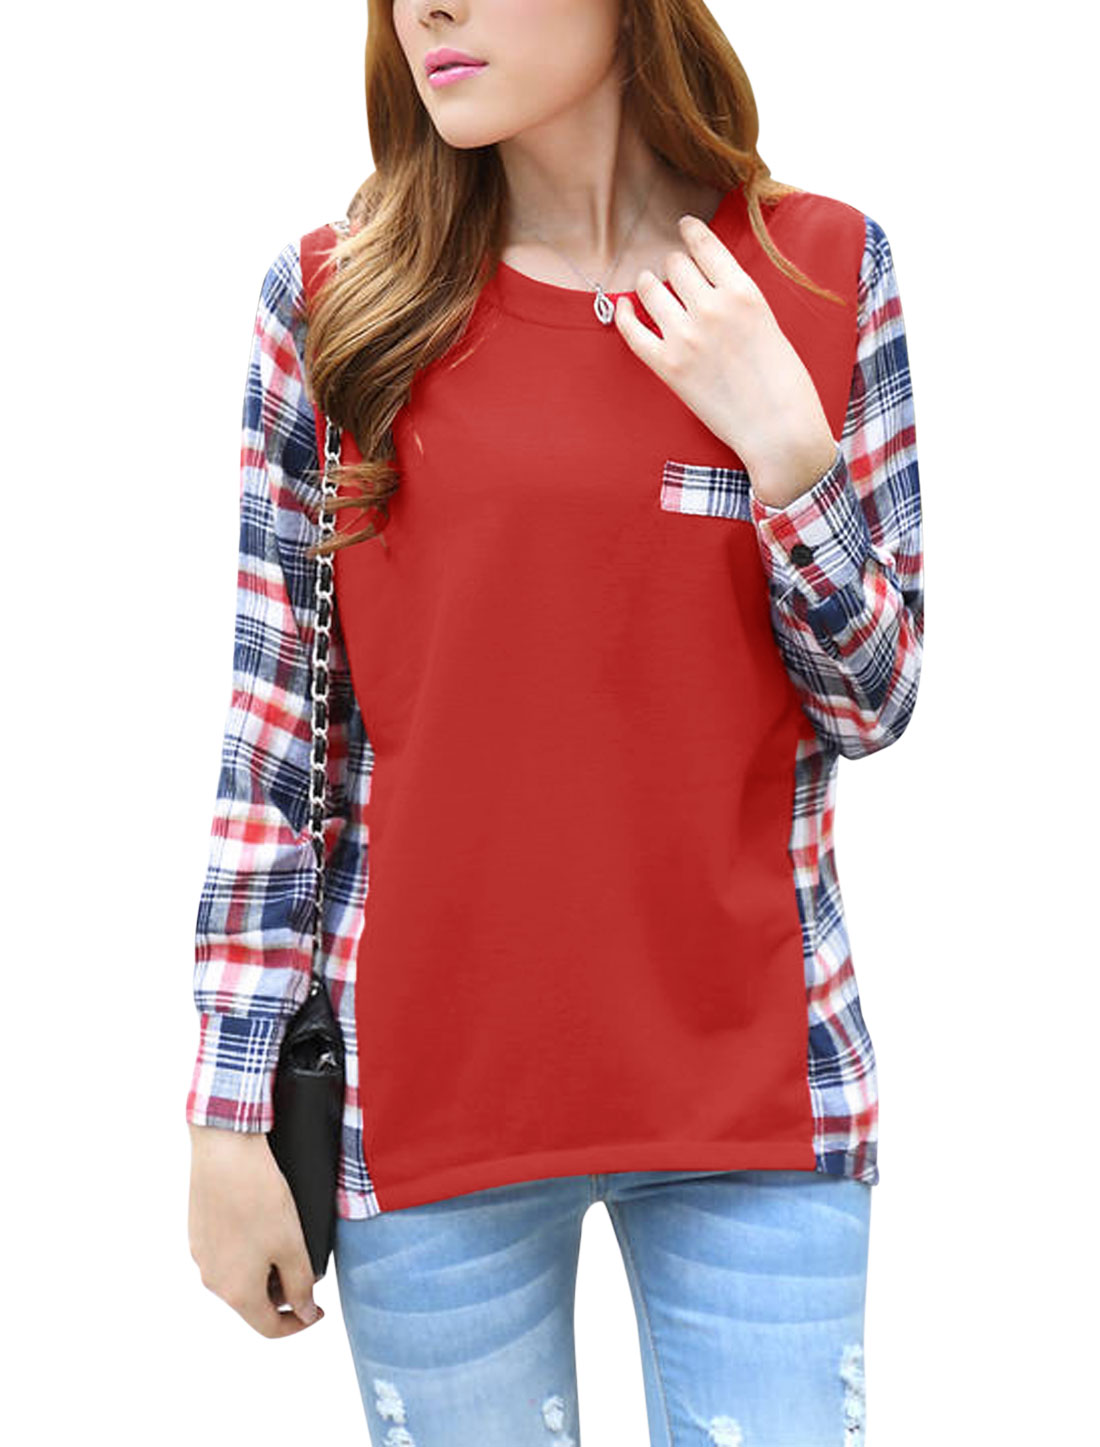 Lady Ribbed Round Neck Spliced Asymmetric Hem Casual Top Red M